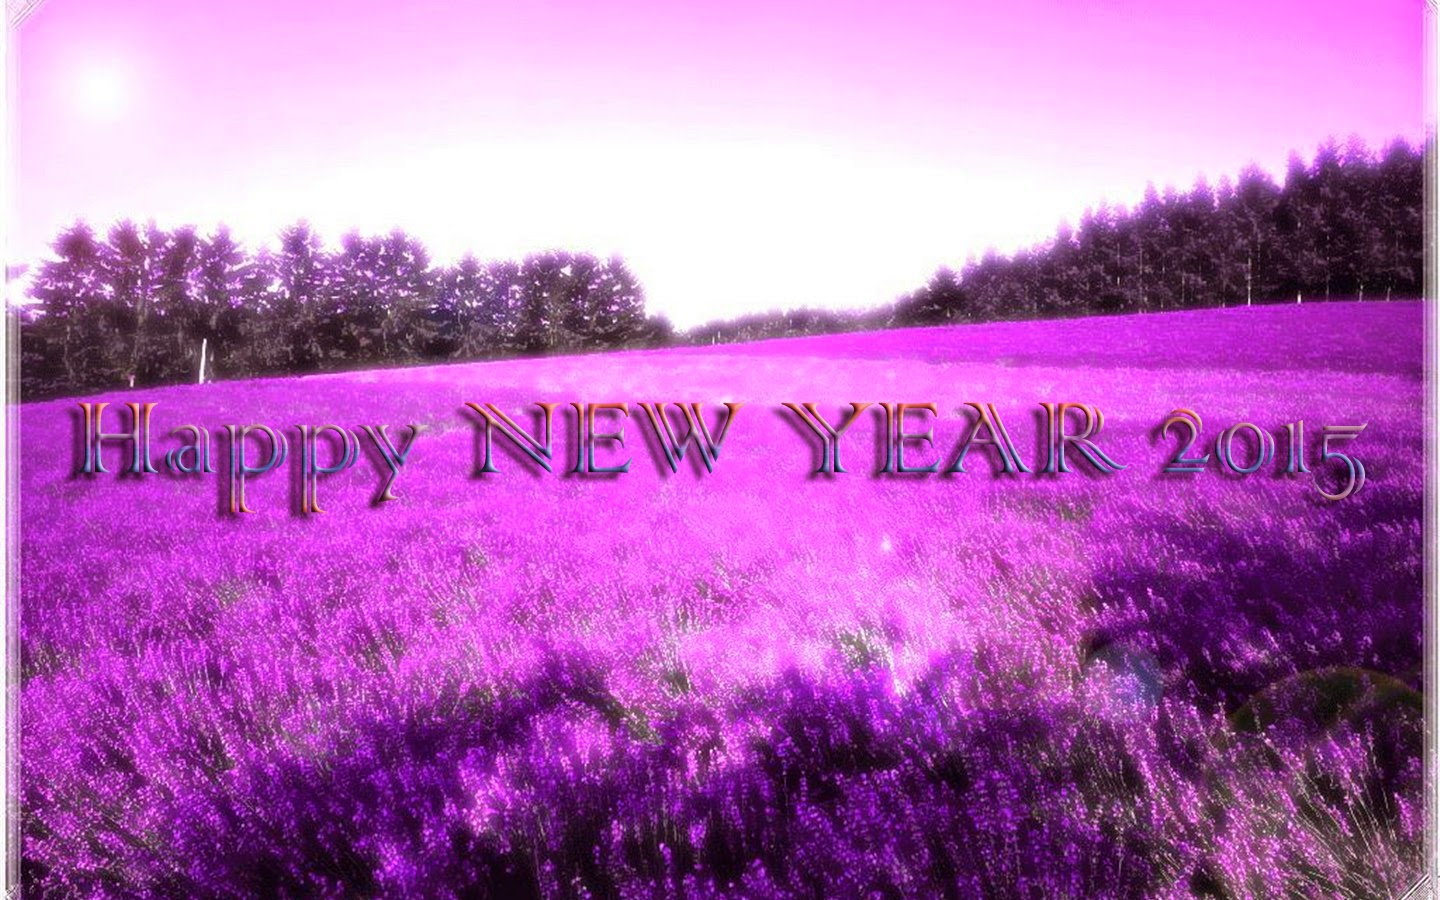 Happy New Year 2015 Eve Wallpapers New Year Pictures Fireworks